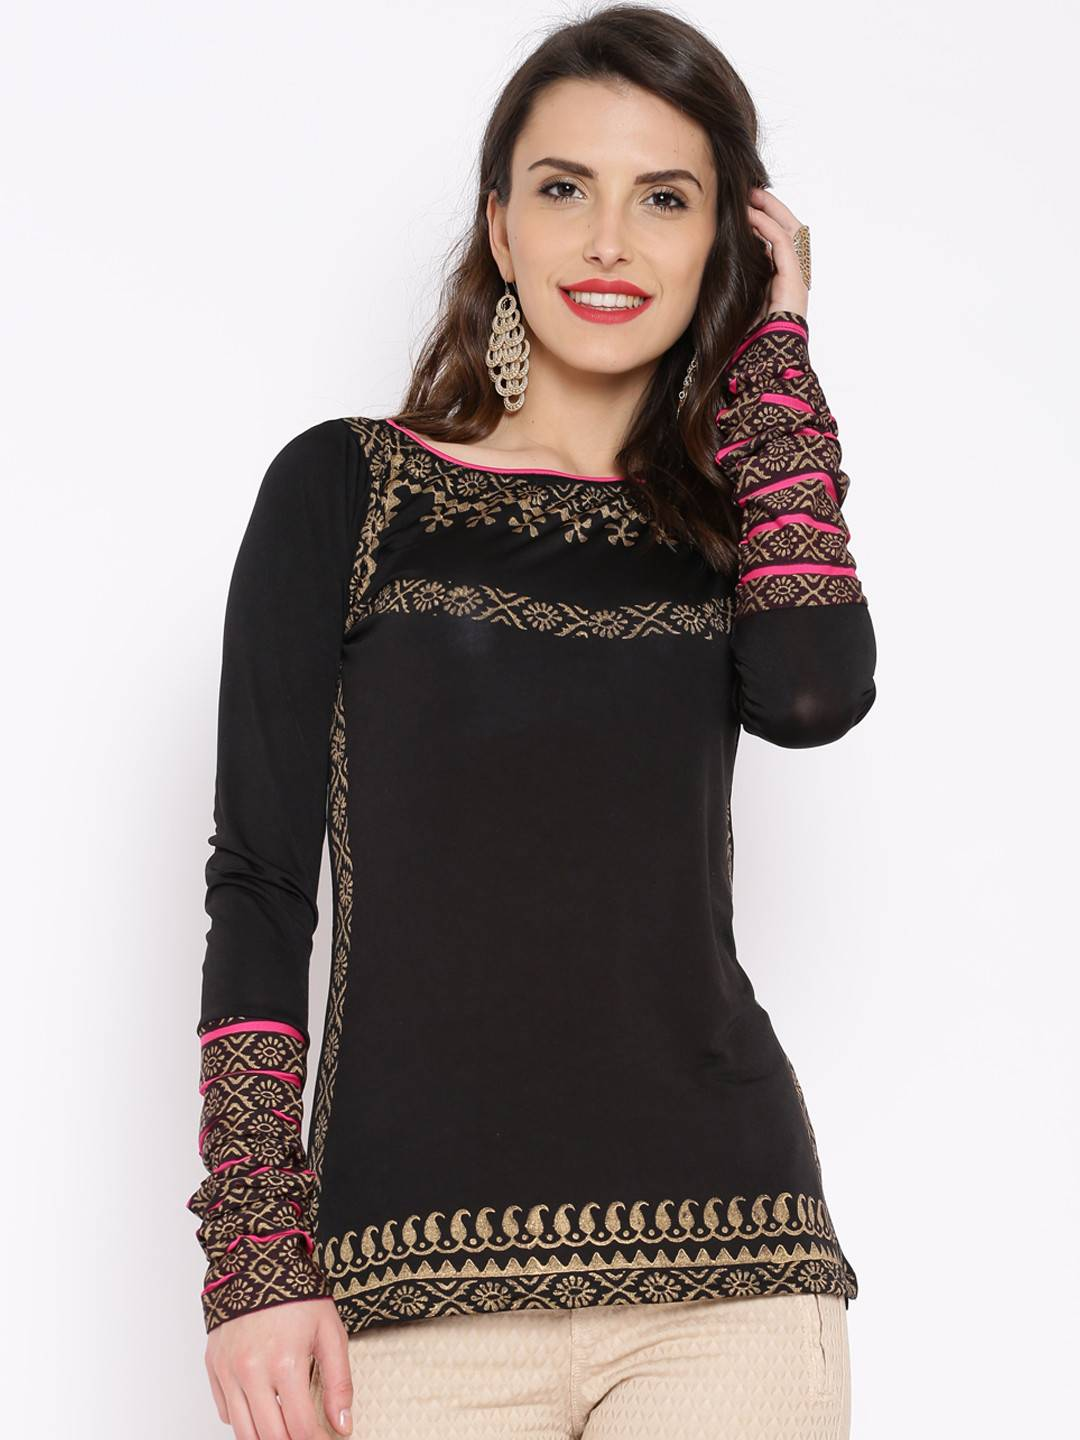 Get upto 70% OFF on Ethnic Wear Collections for Women (Kurtis, Printed suits and Many More)